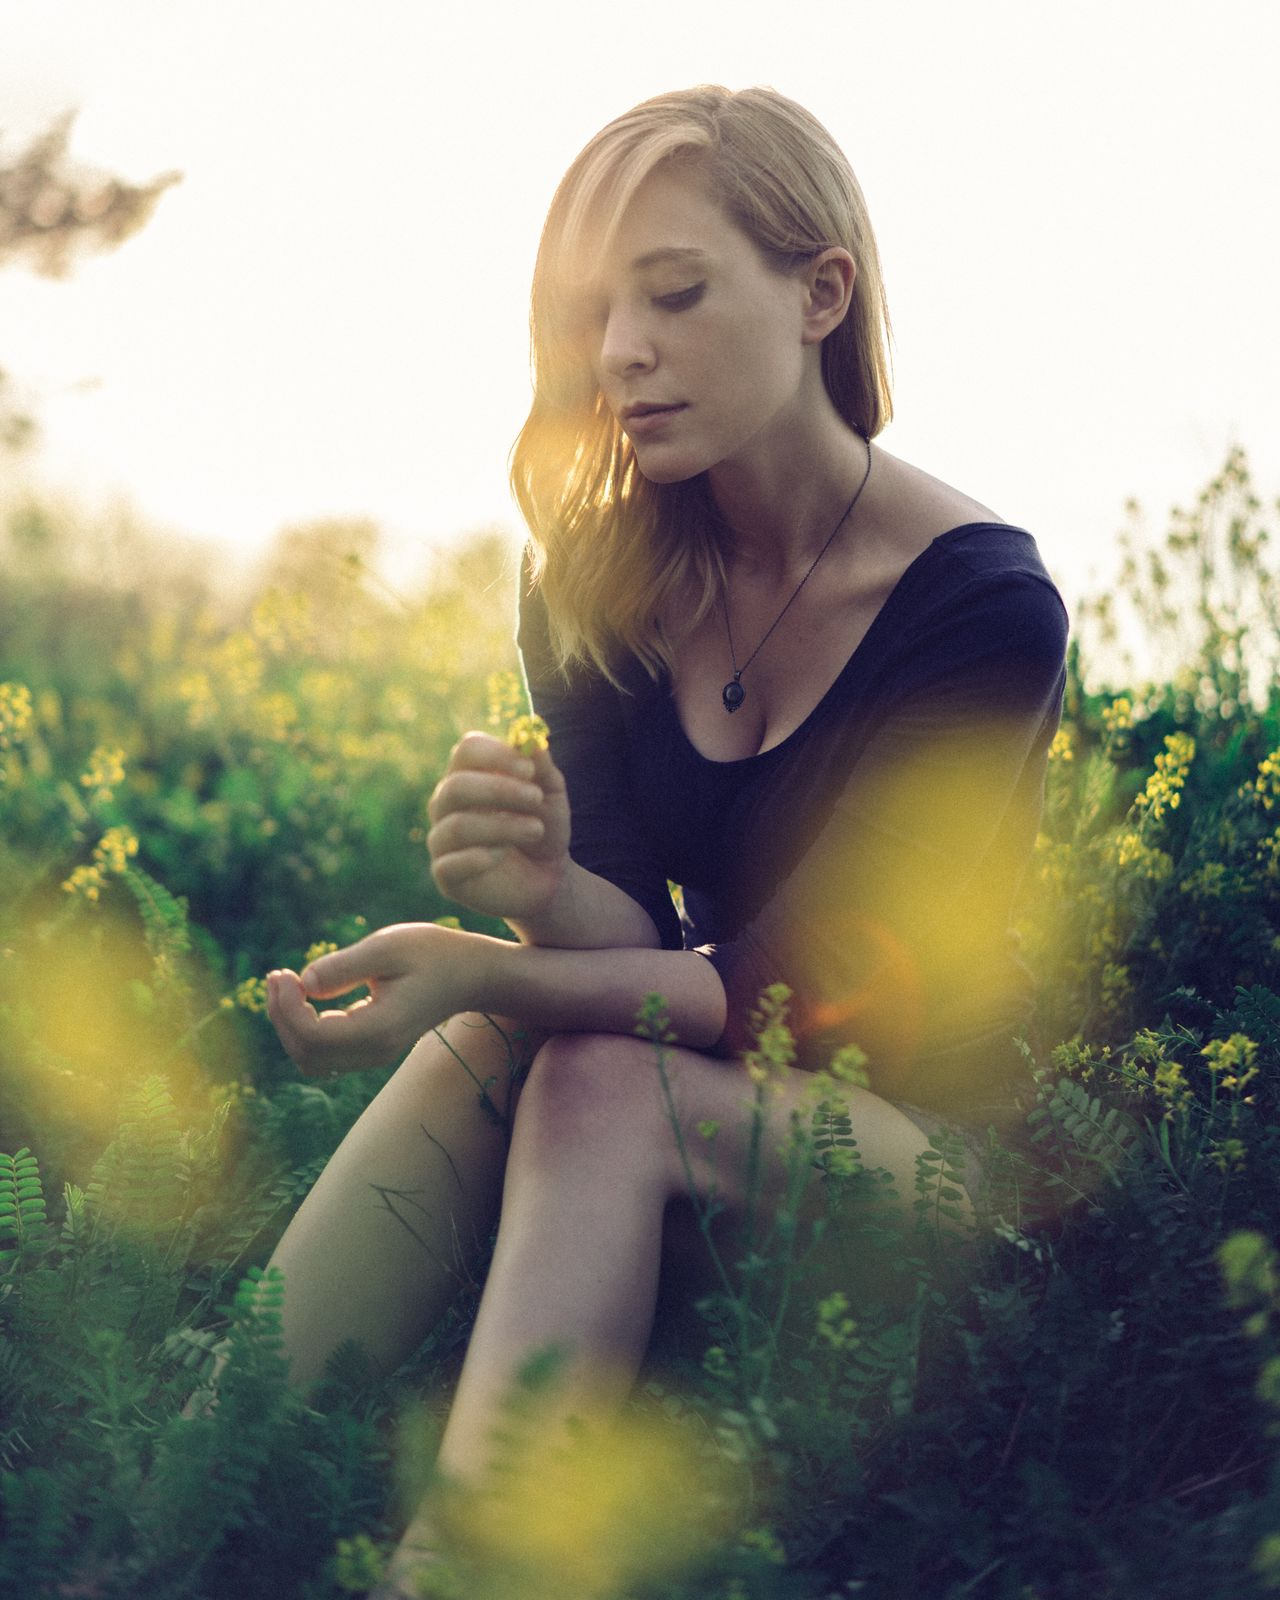 Young Adult One Person Young Women Sitting Three Quarter Length Holding Real People Casual Clothing Field Grass Outdoors Lifestyles Bad Habit Blond Hair Day Nature Tree People Adult May